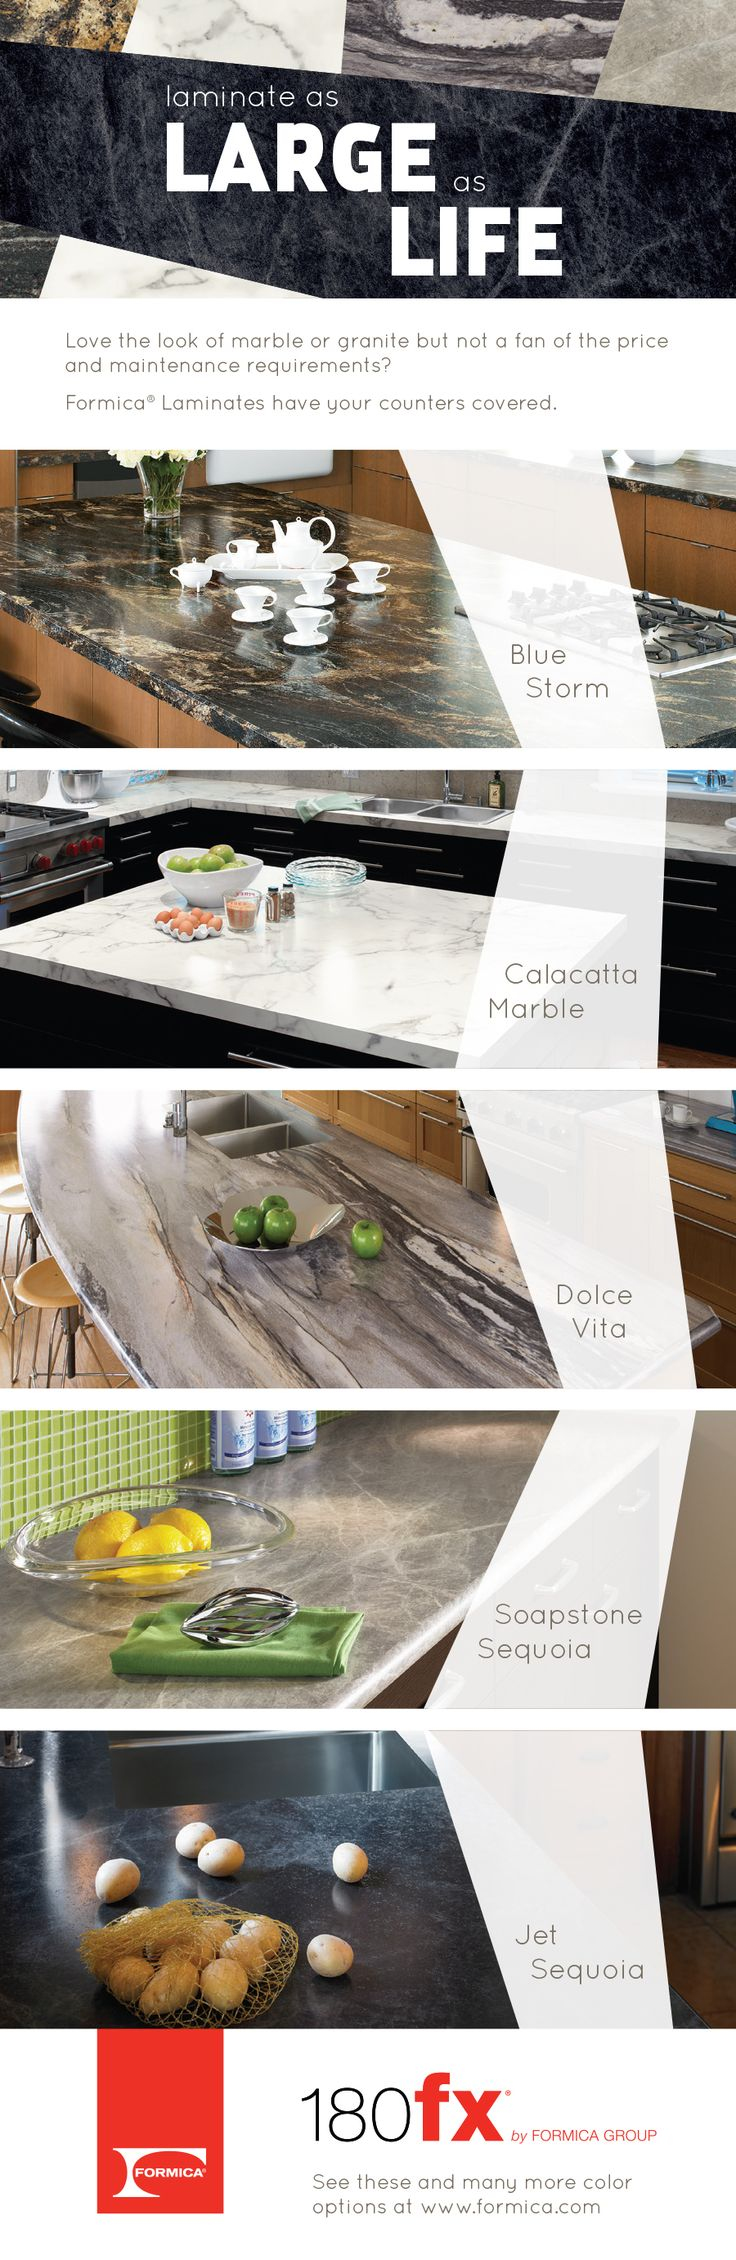 Love the look of marble or granite but not a fan of the price and maintenance requirements?  Formica® Laminates have your counters covered. Visit www.formica.com for free samples.